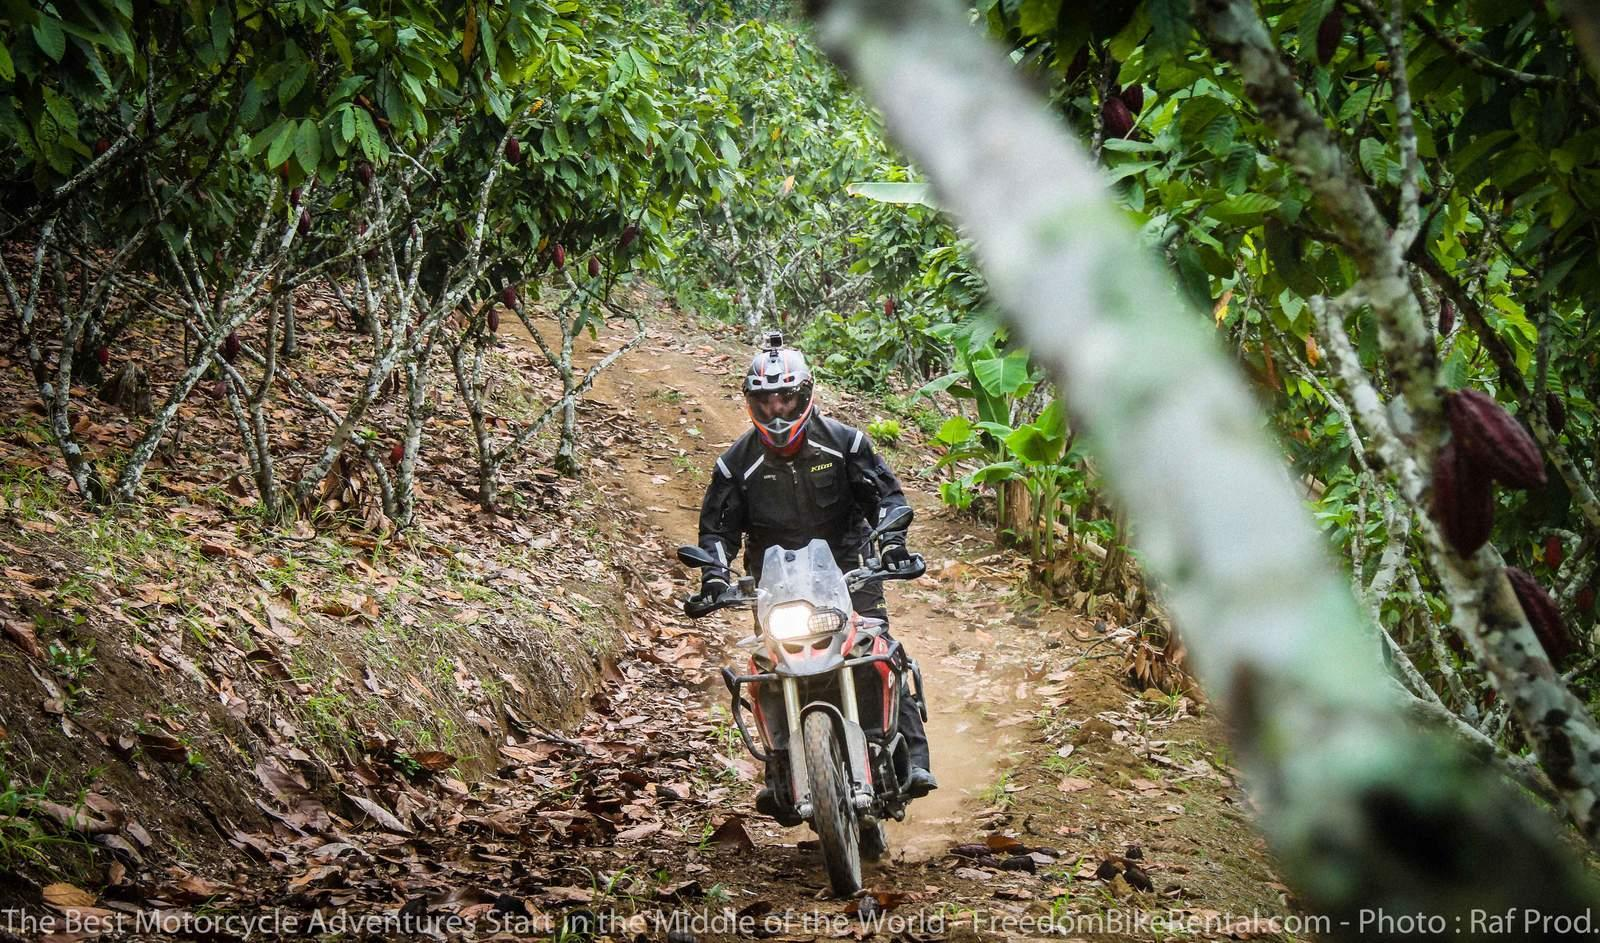 Offroad Motorcycling through chocolate plantation